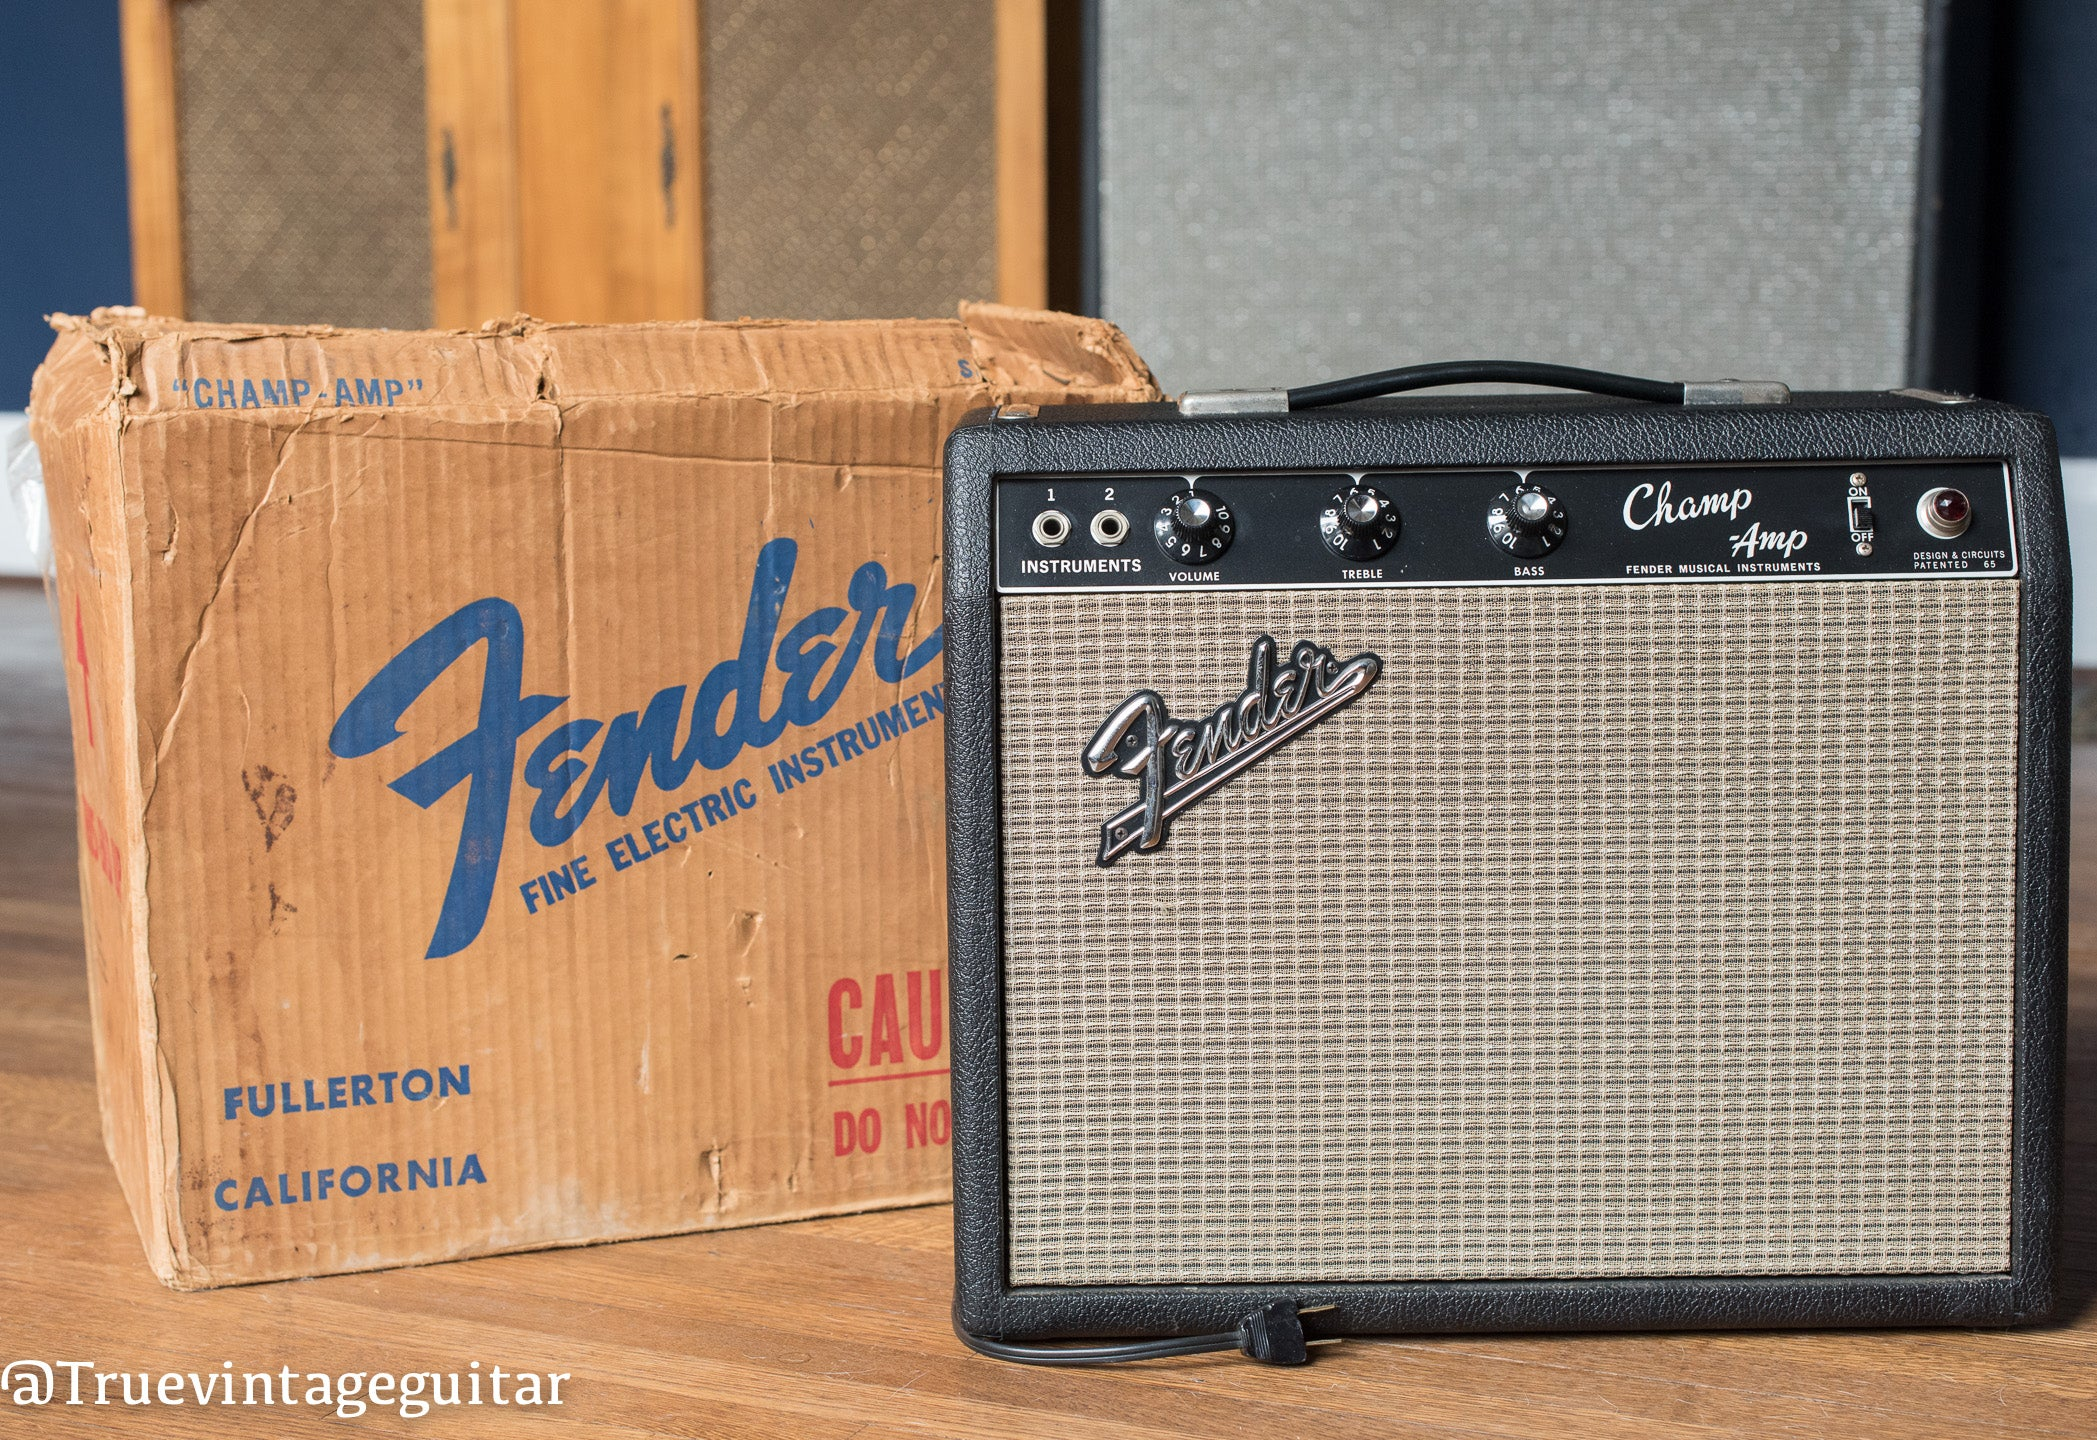 Vintage 1966 Fender Champ guitar amplifier shipping box